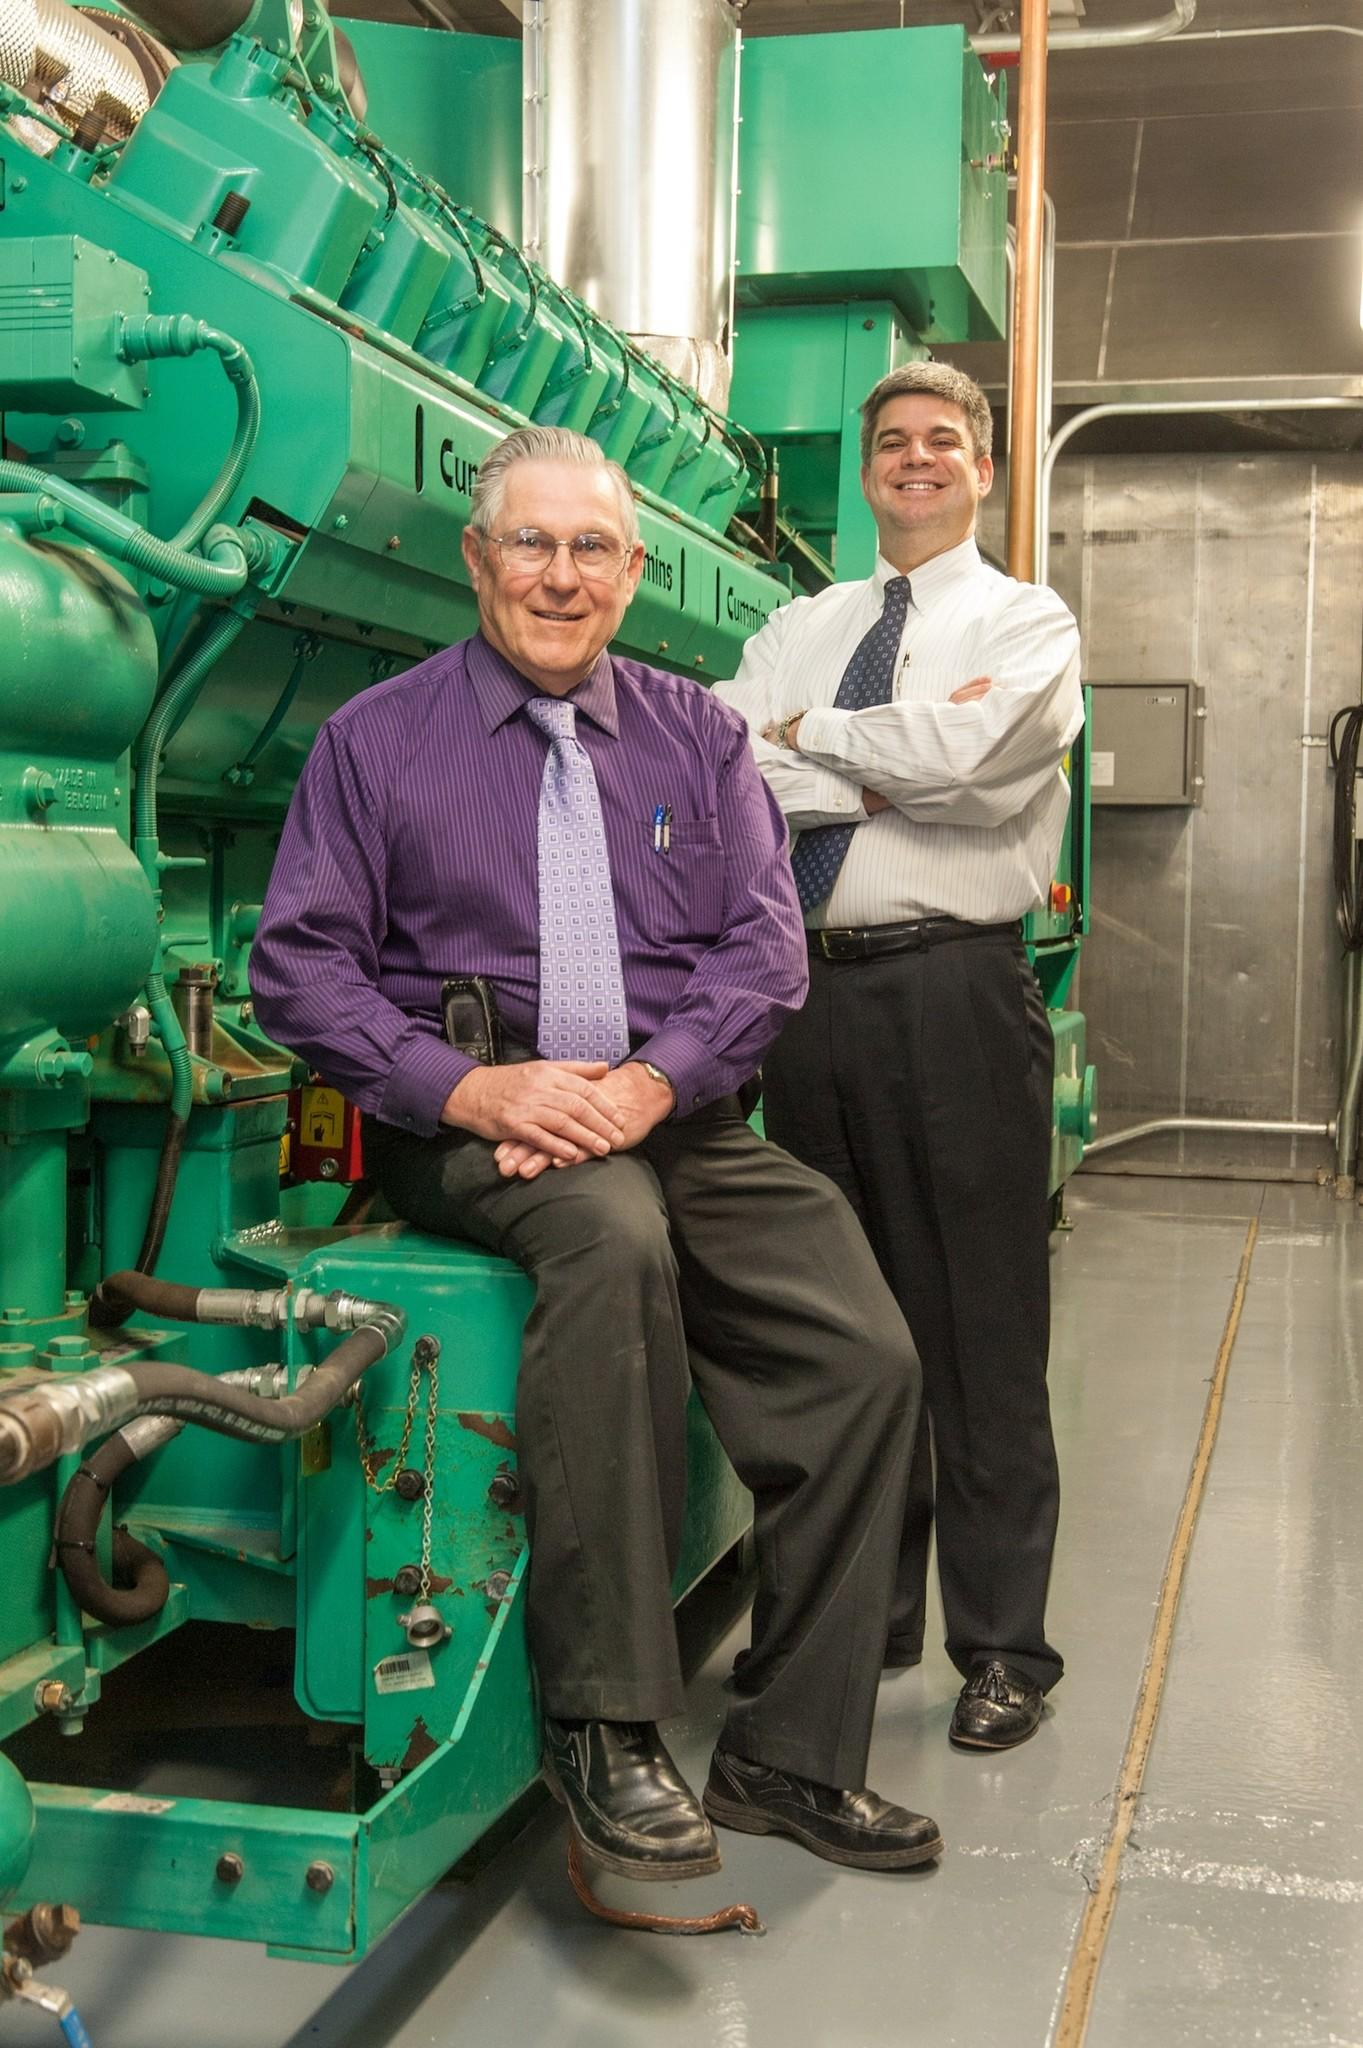 Wayne Rutty (left), project manager, and David Giuffrida, vice president of facilities and support services, beside the combined heat and power generator at Middlesex Hospital.